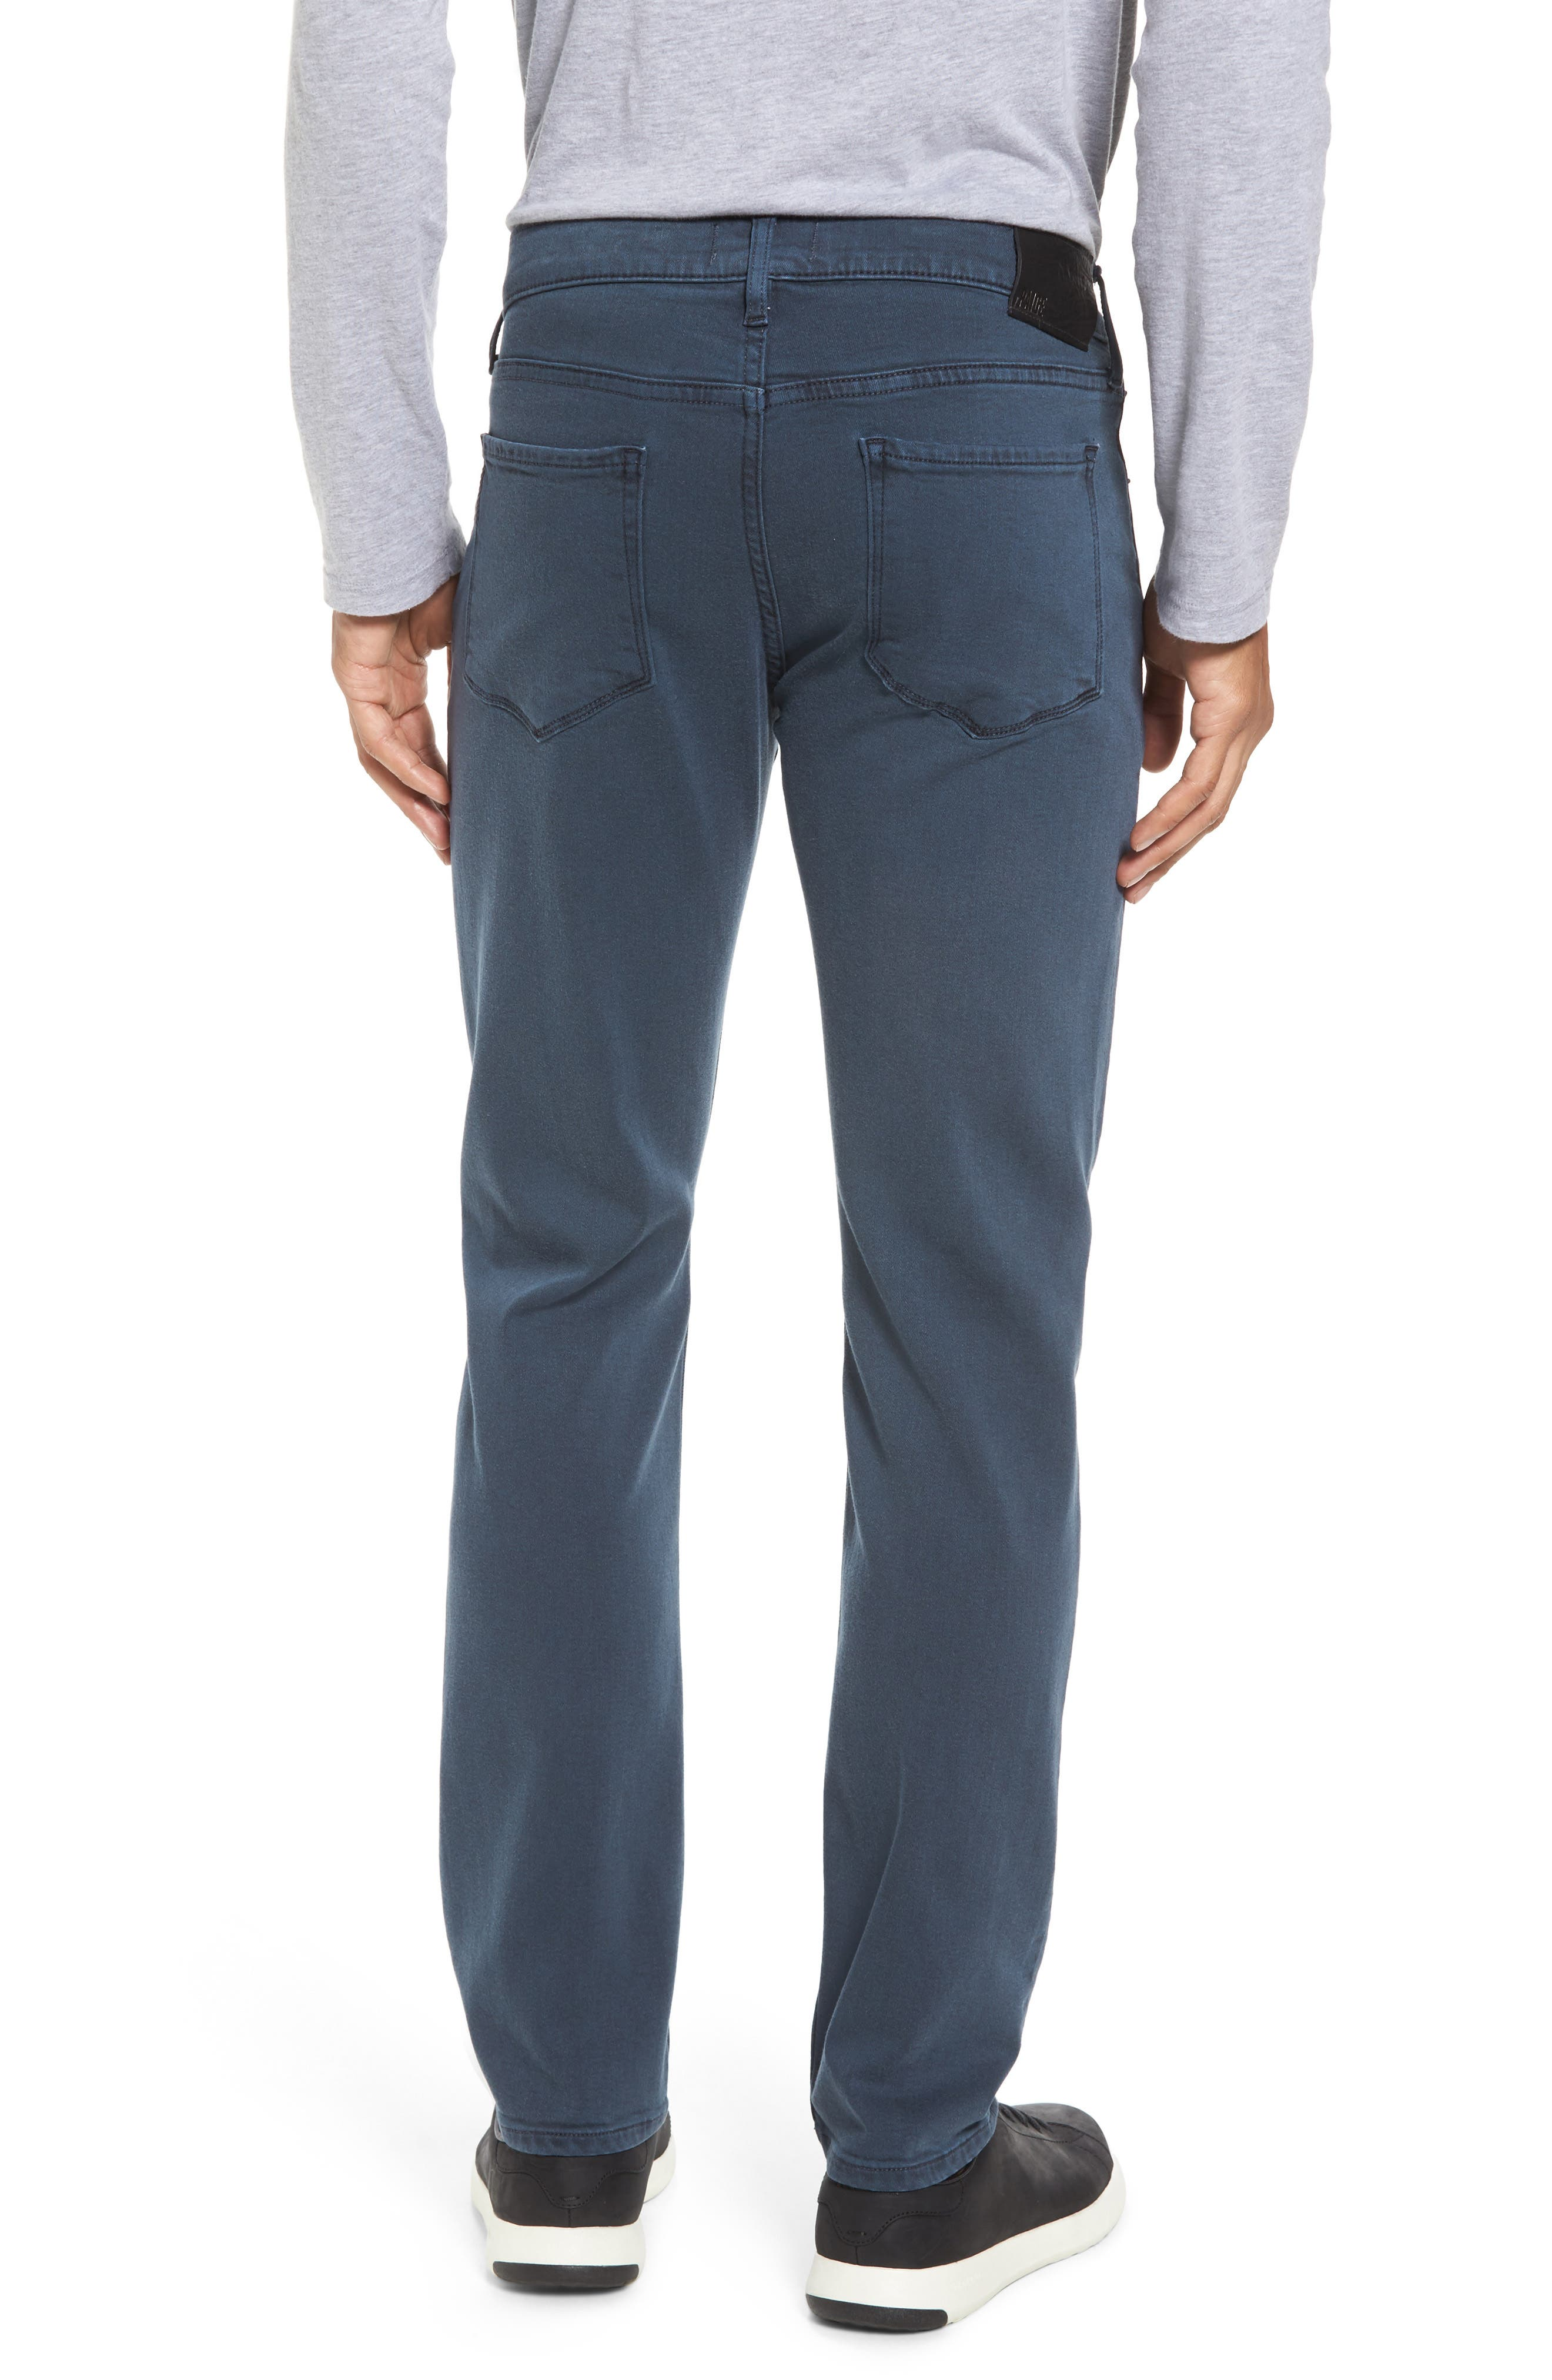 Lennox Slim Fit Jeans,                             Alternate thumbnail 2, color,                             VINTAGE AMALFI